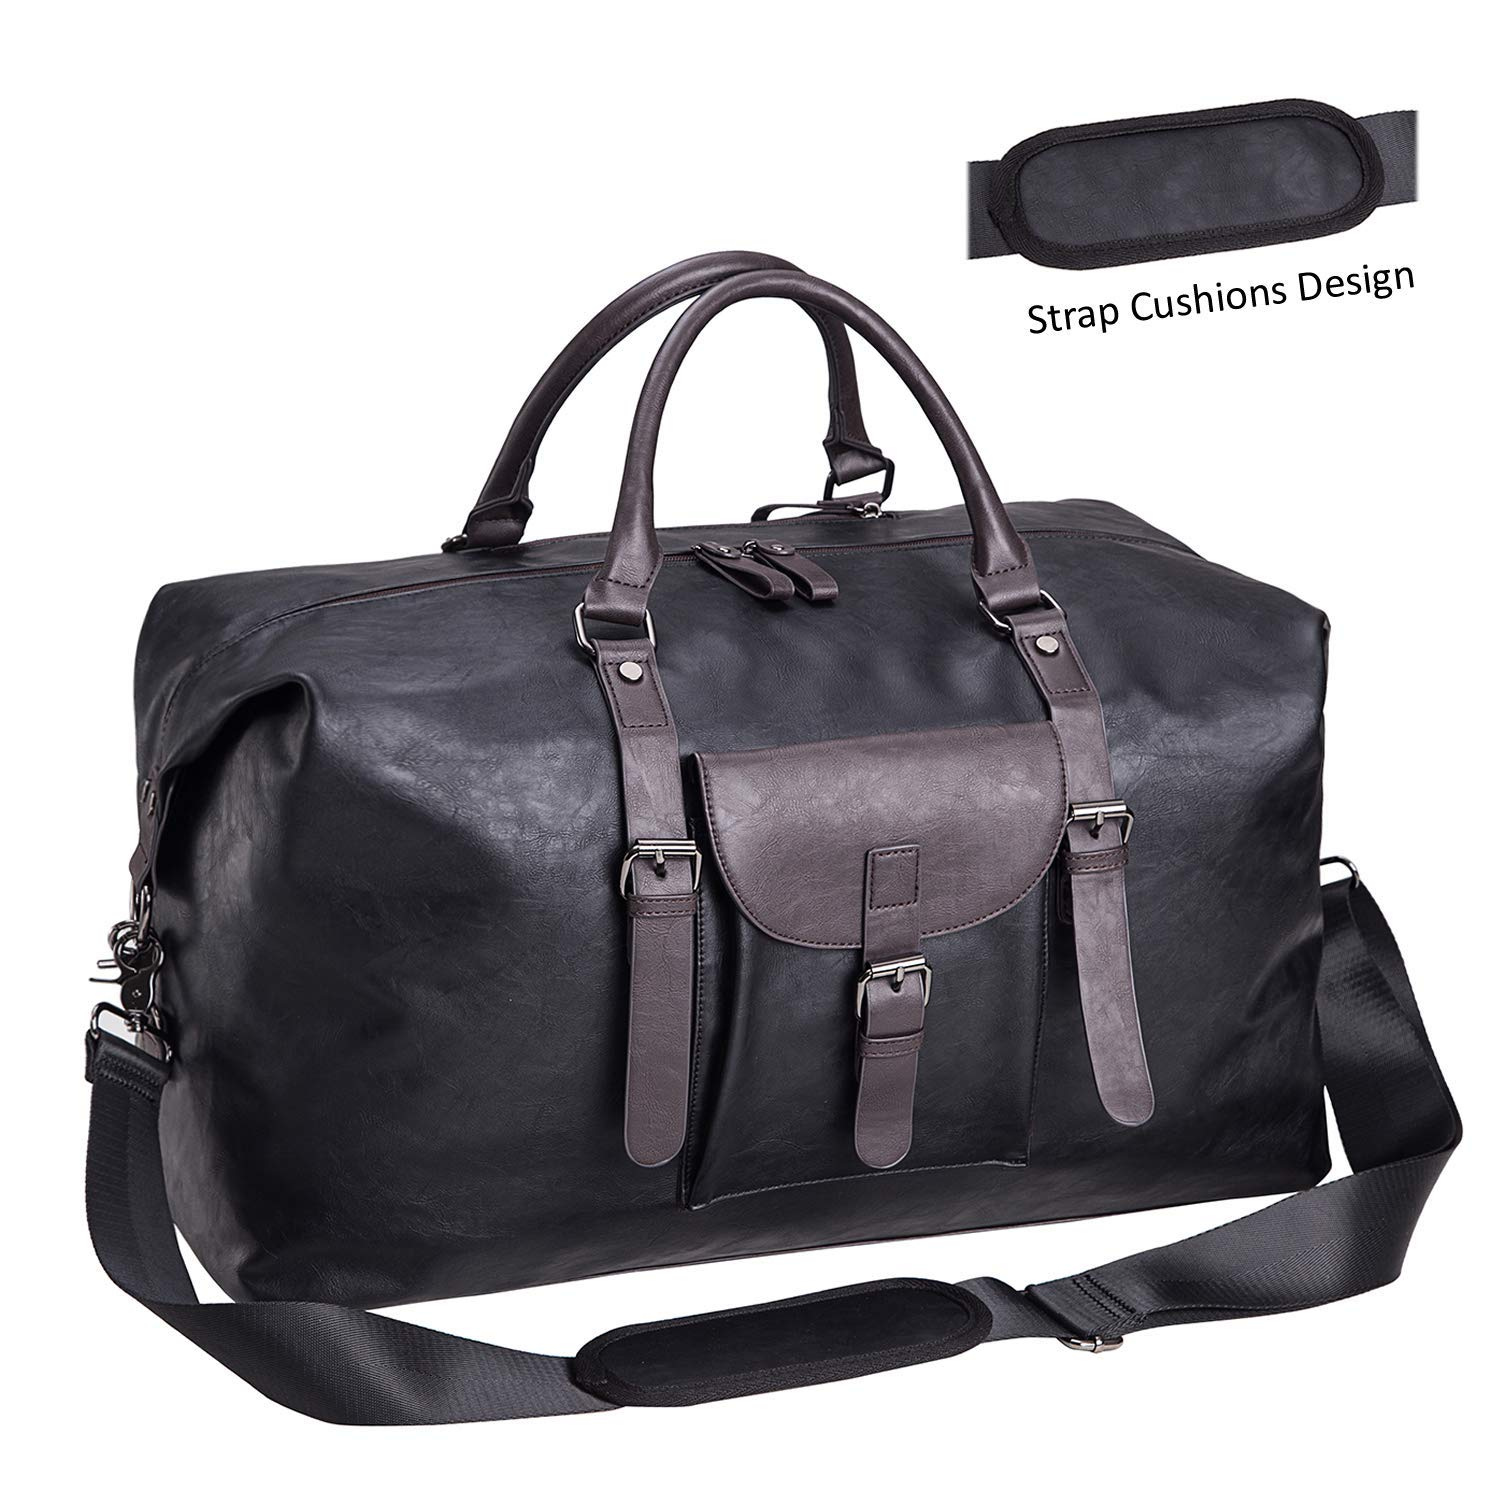 Amazon.com   Oversized Leather Travel Duffel Bag Black,Weekender Overnight  Bag Waterproof Leather Large Carry On Bag Travel Tote Duffel Bag for Men or  ... e9696fa8c9